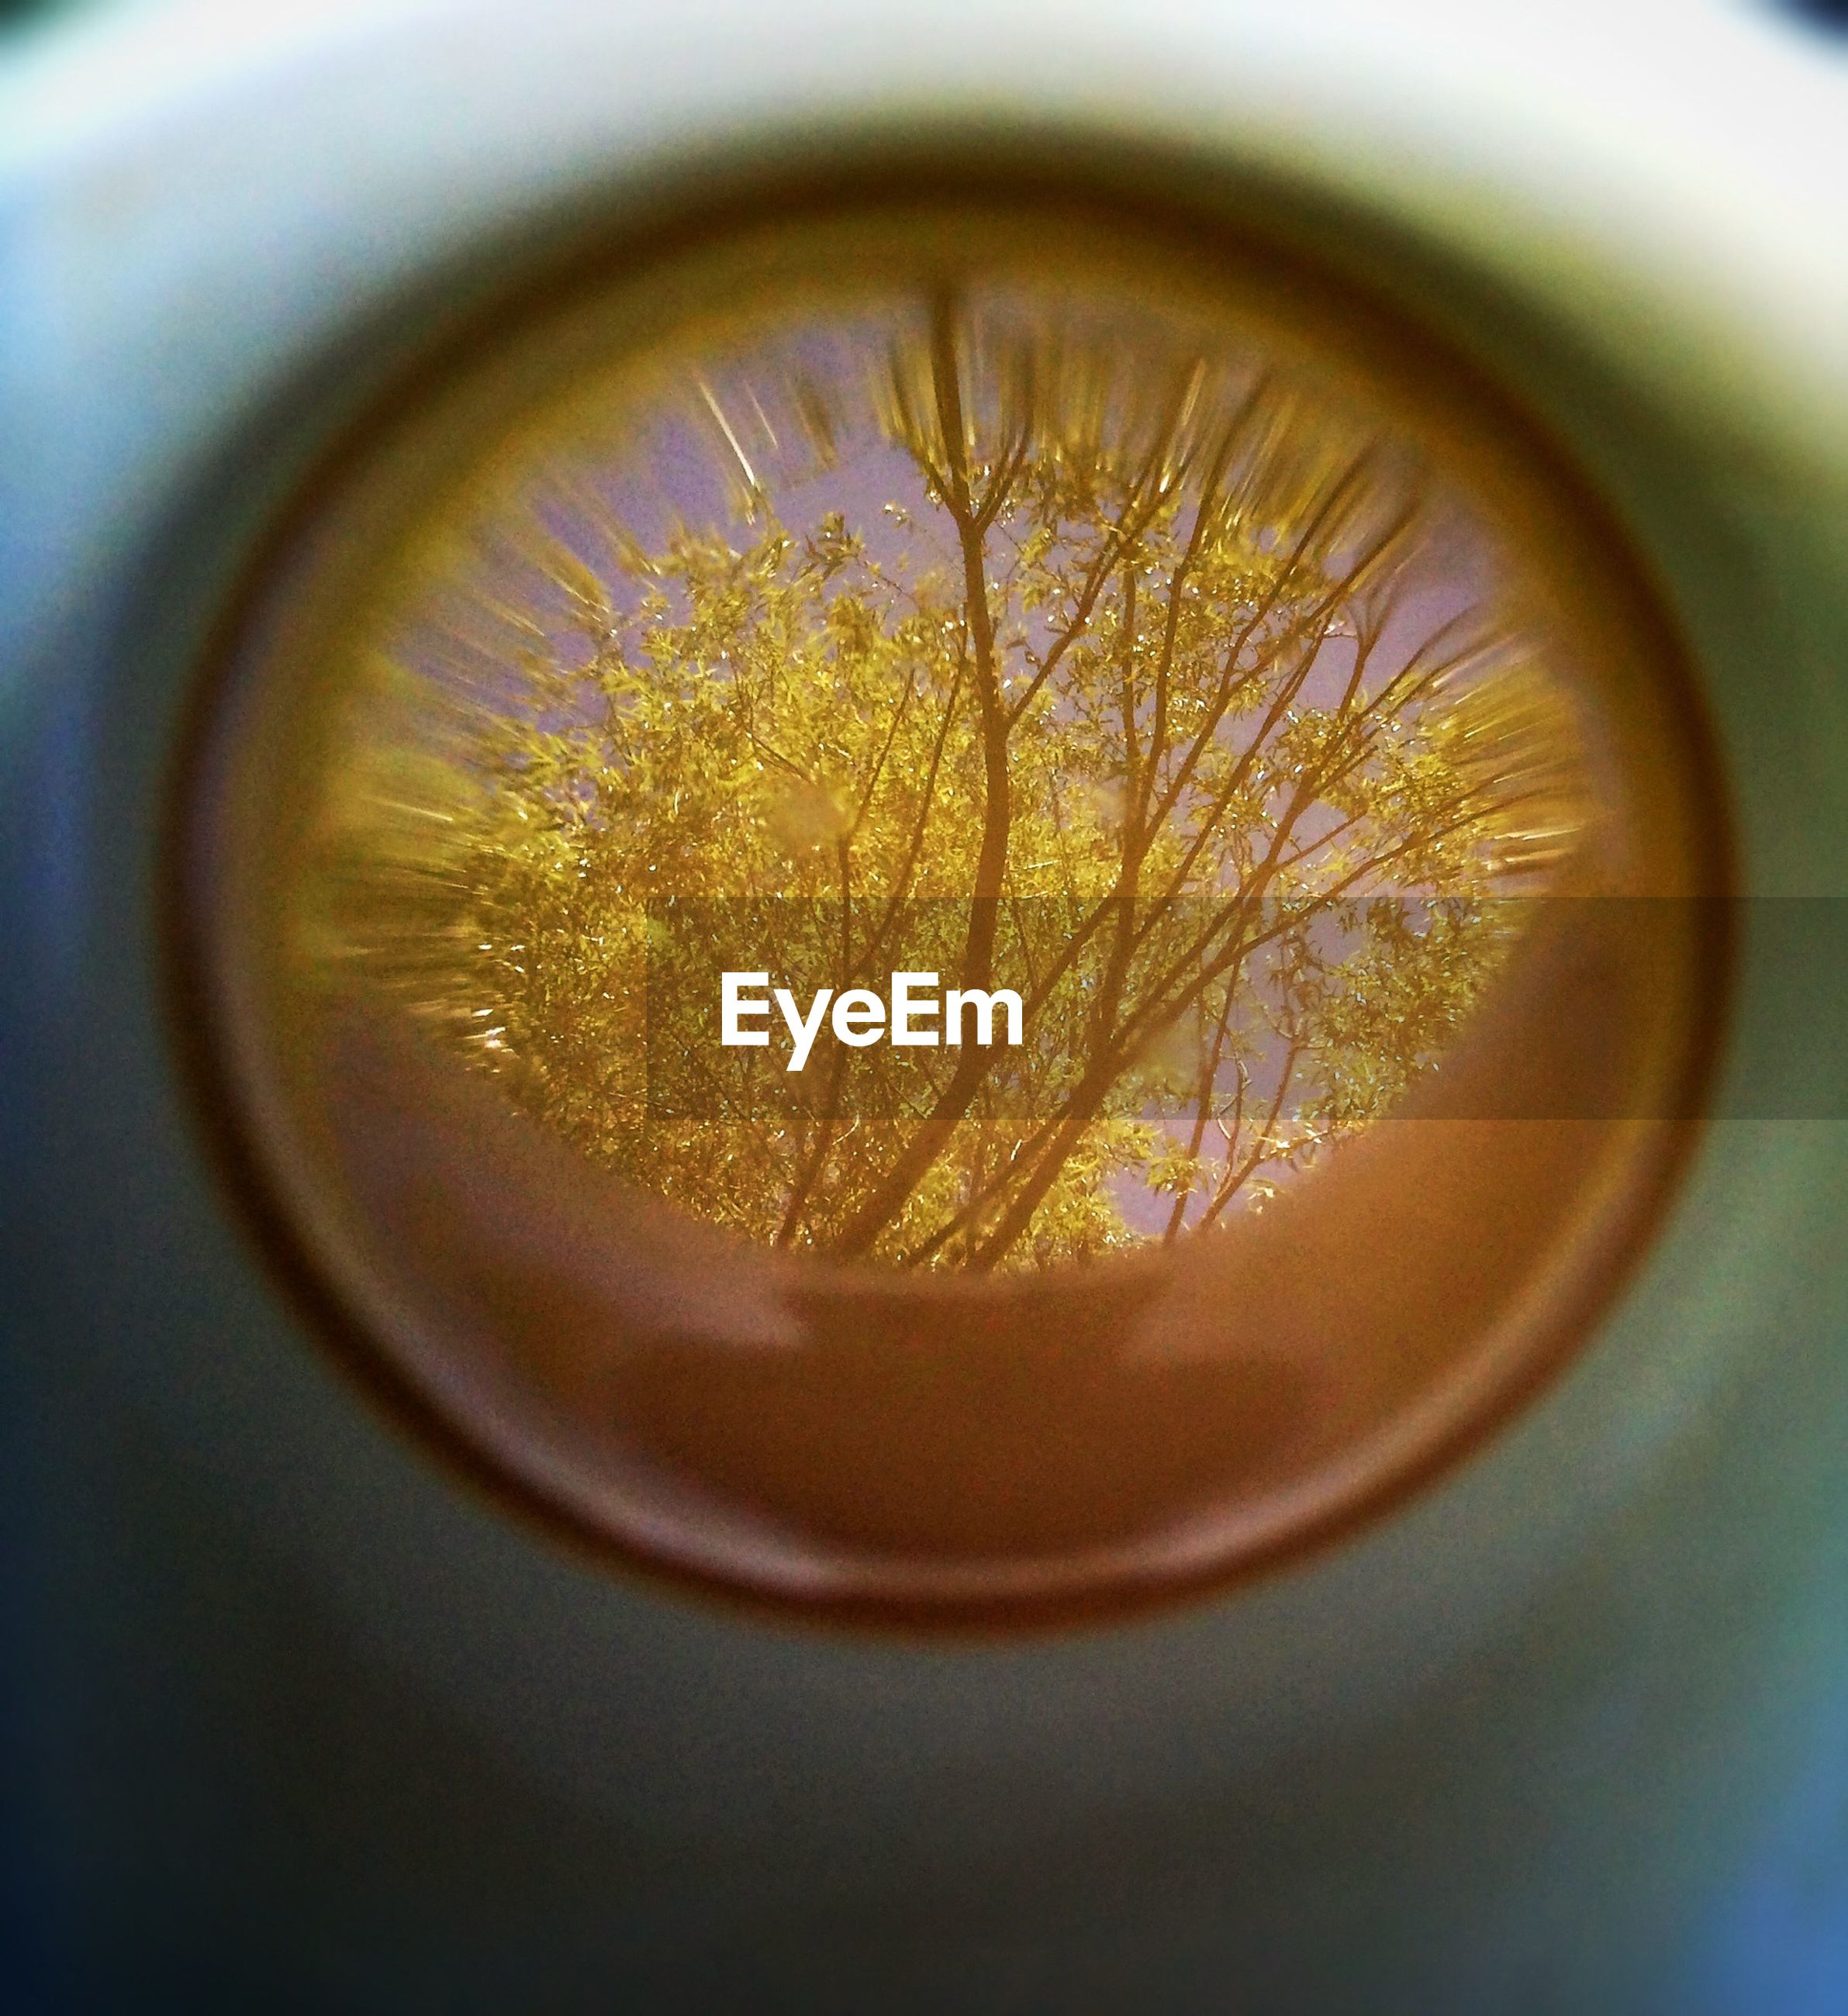 Reflection of trees in telescope